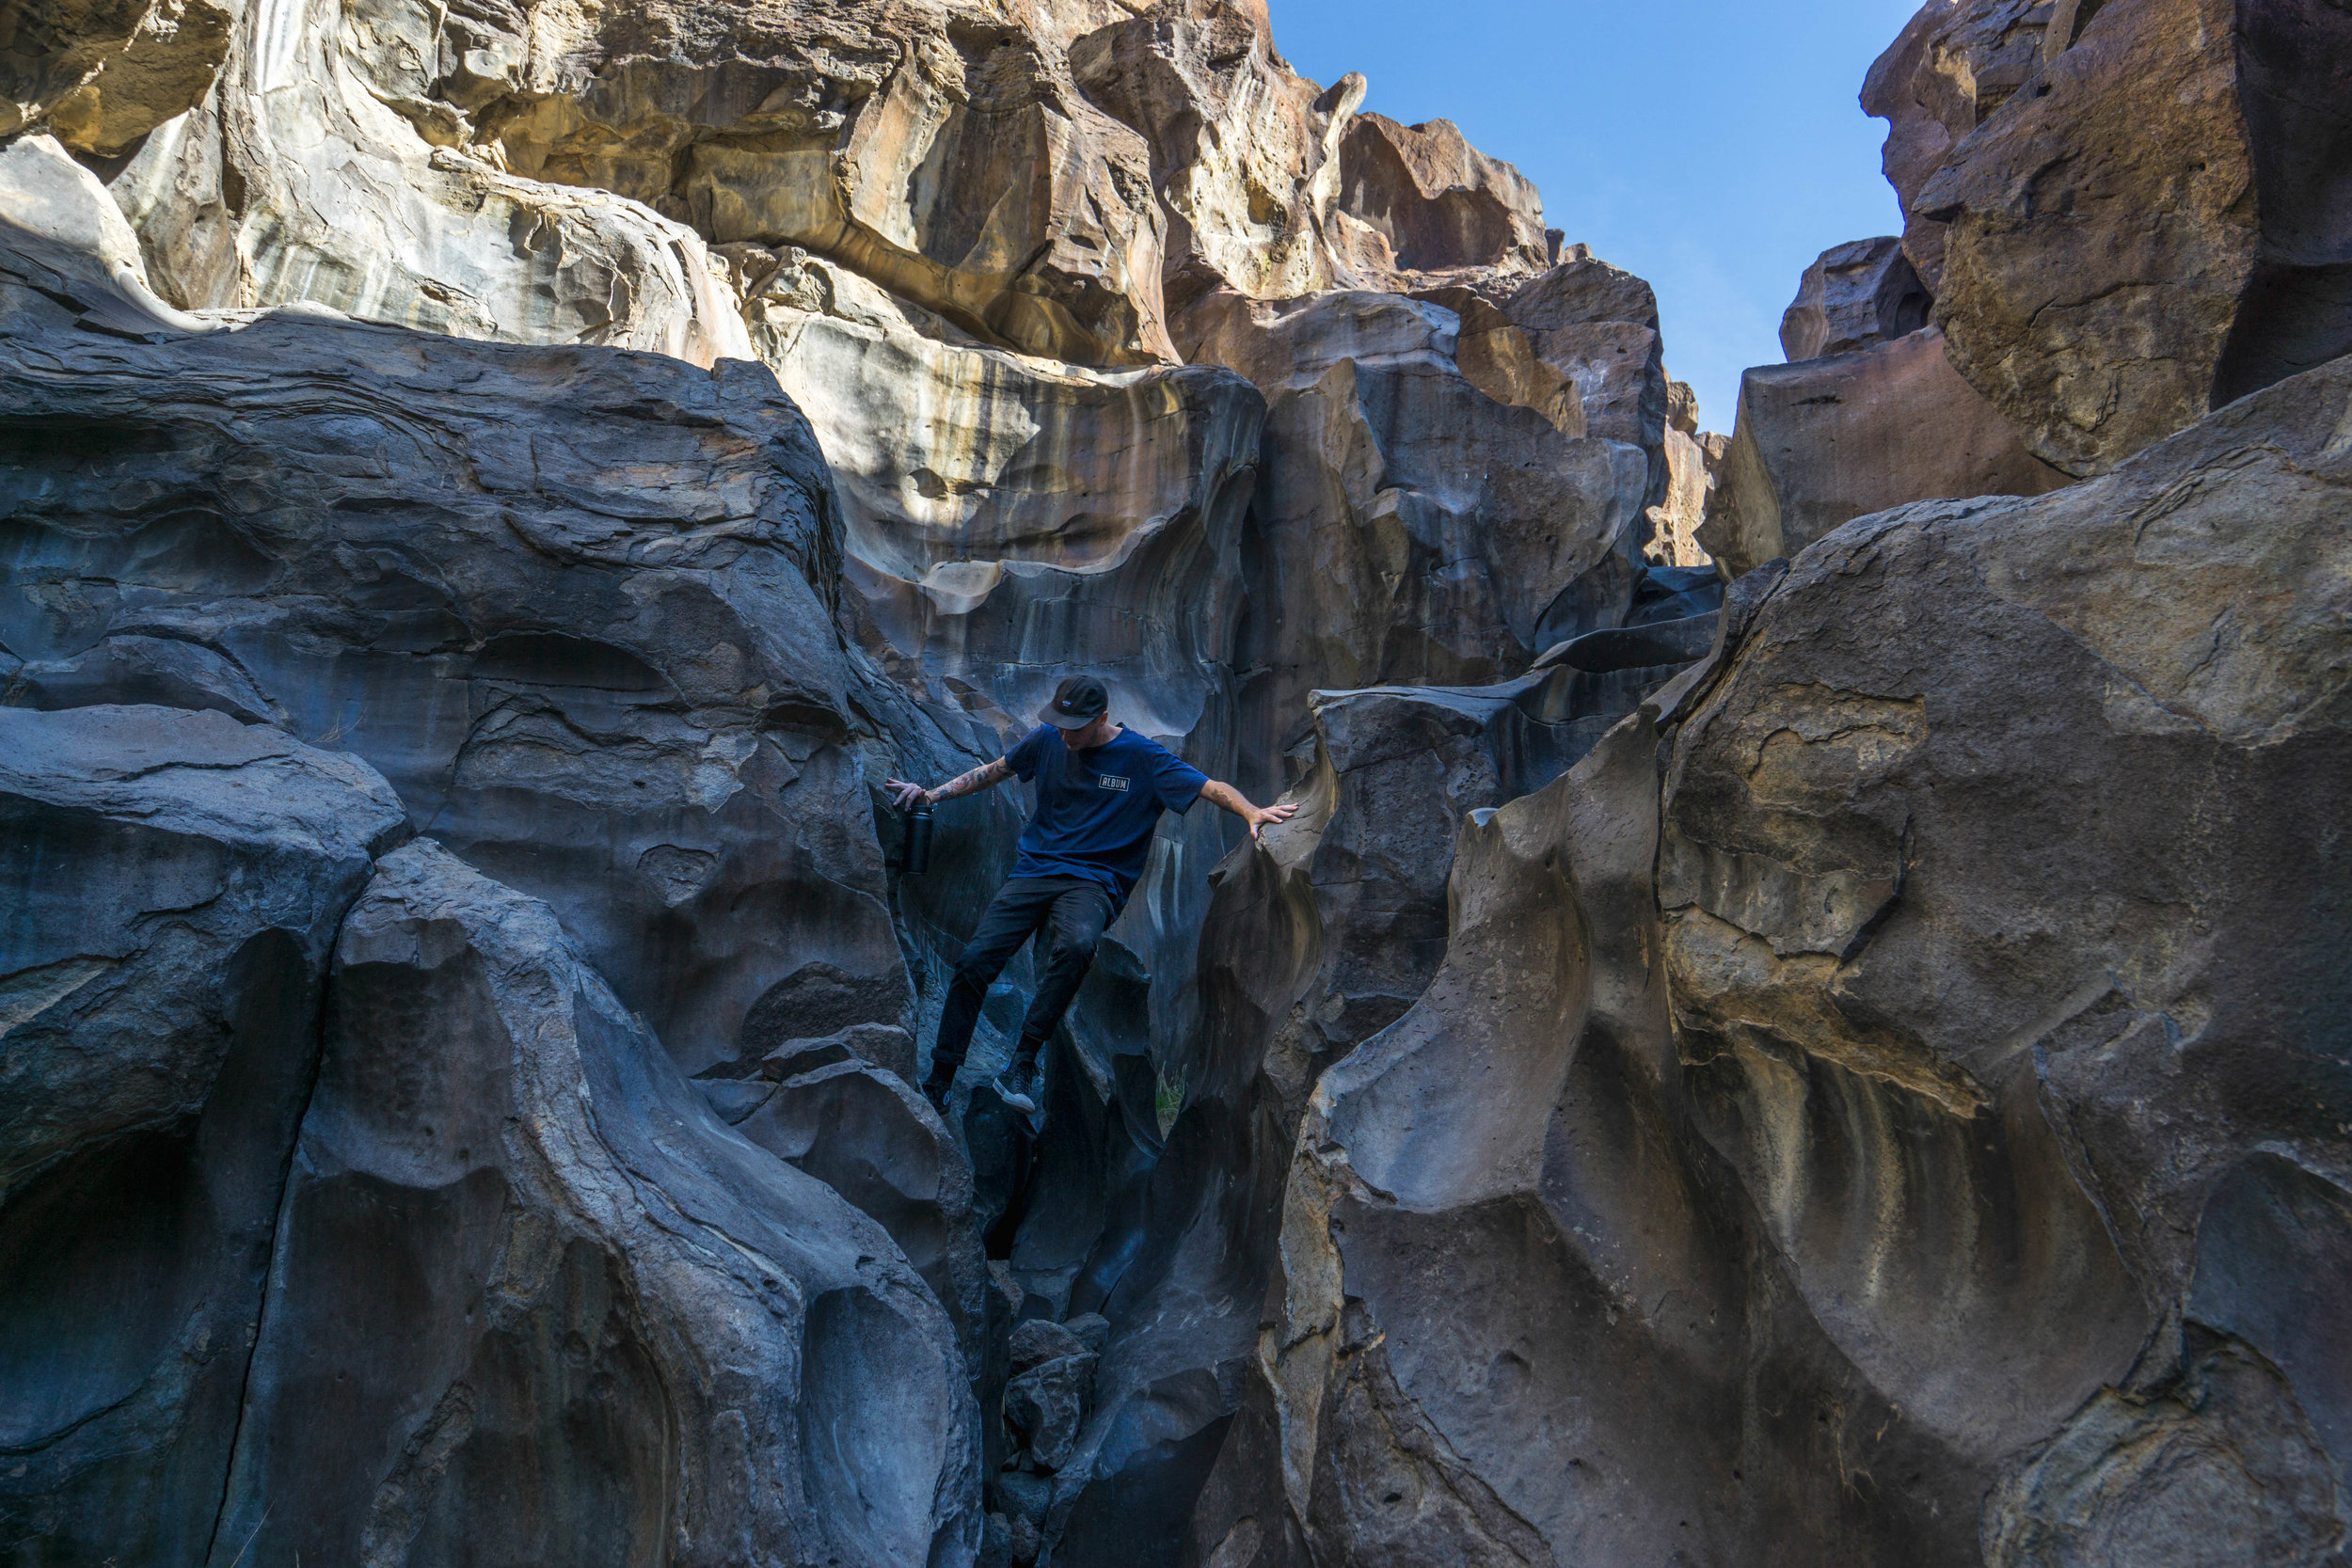 Unable to resist the temptation, we climb down into the water-slick lava rock canyon.